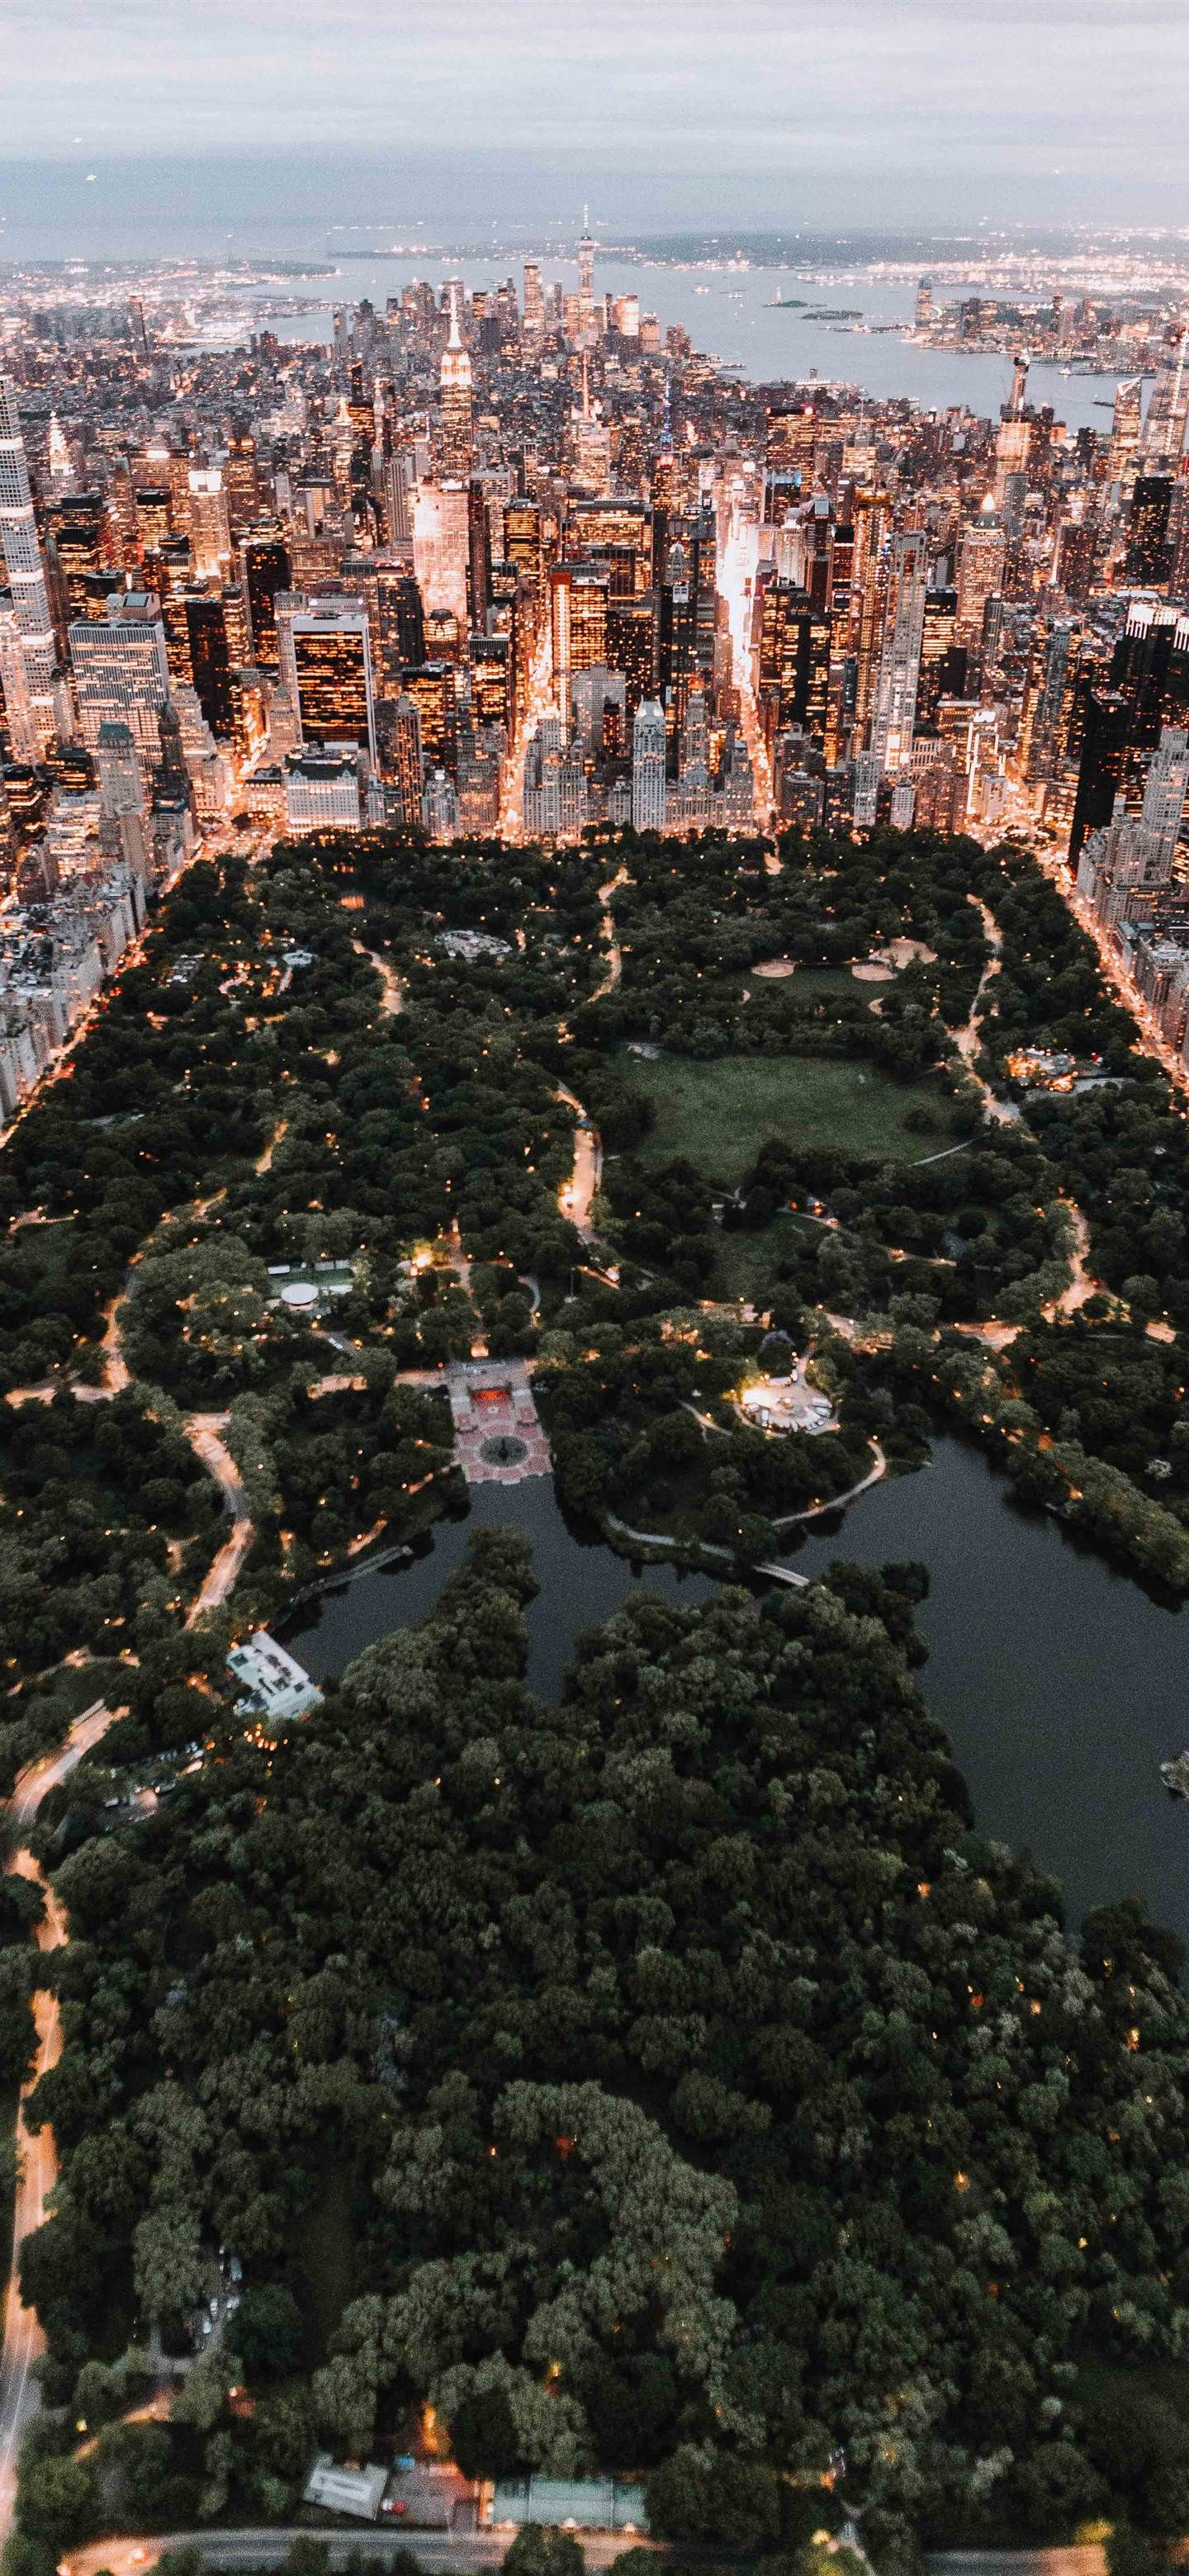 Free Download The Central Park From Above New York City Wallpaper Beaty Your Phone City America Helico City Wallpaper New York Wallpaper Travel Aesthetic